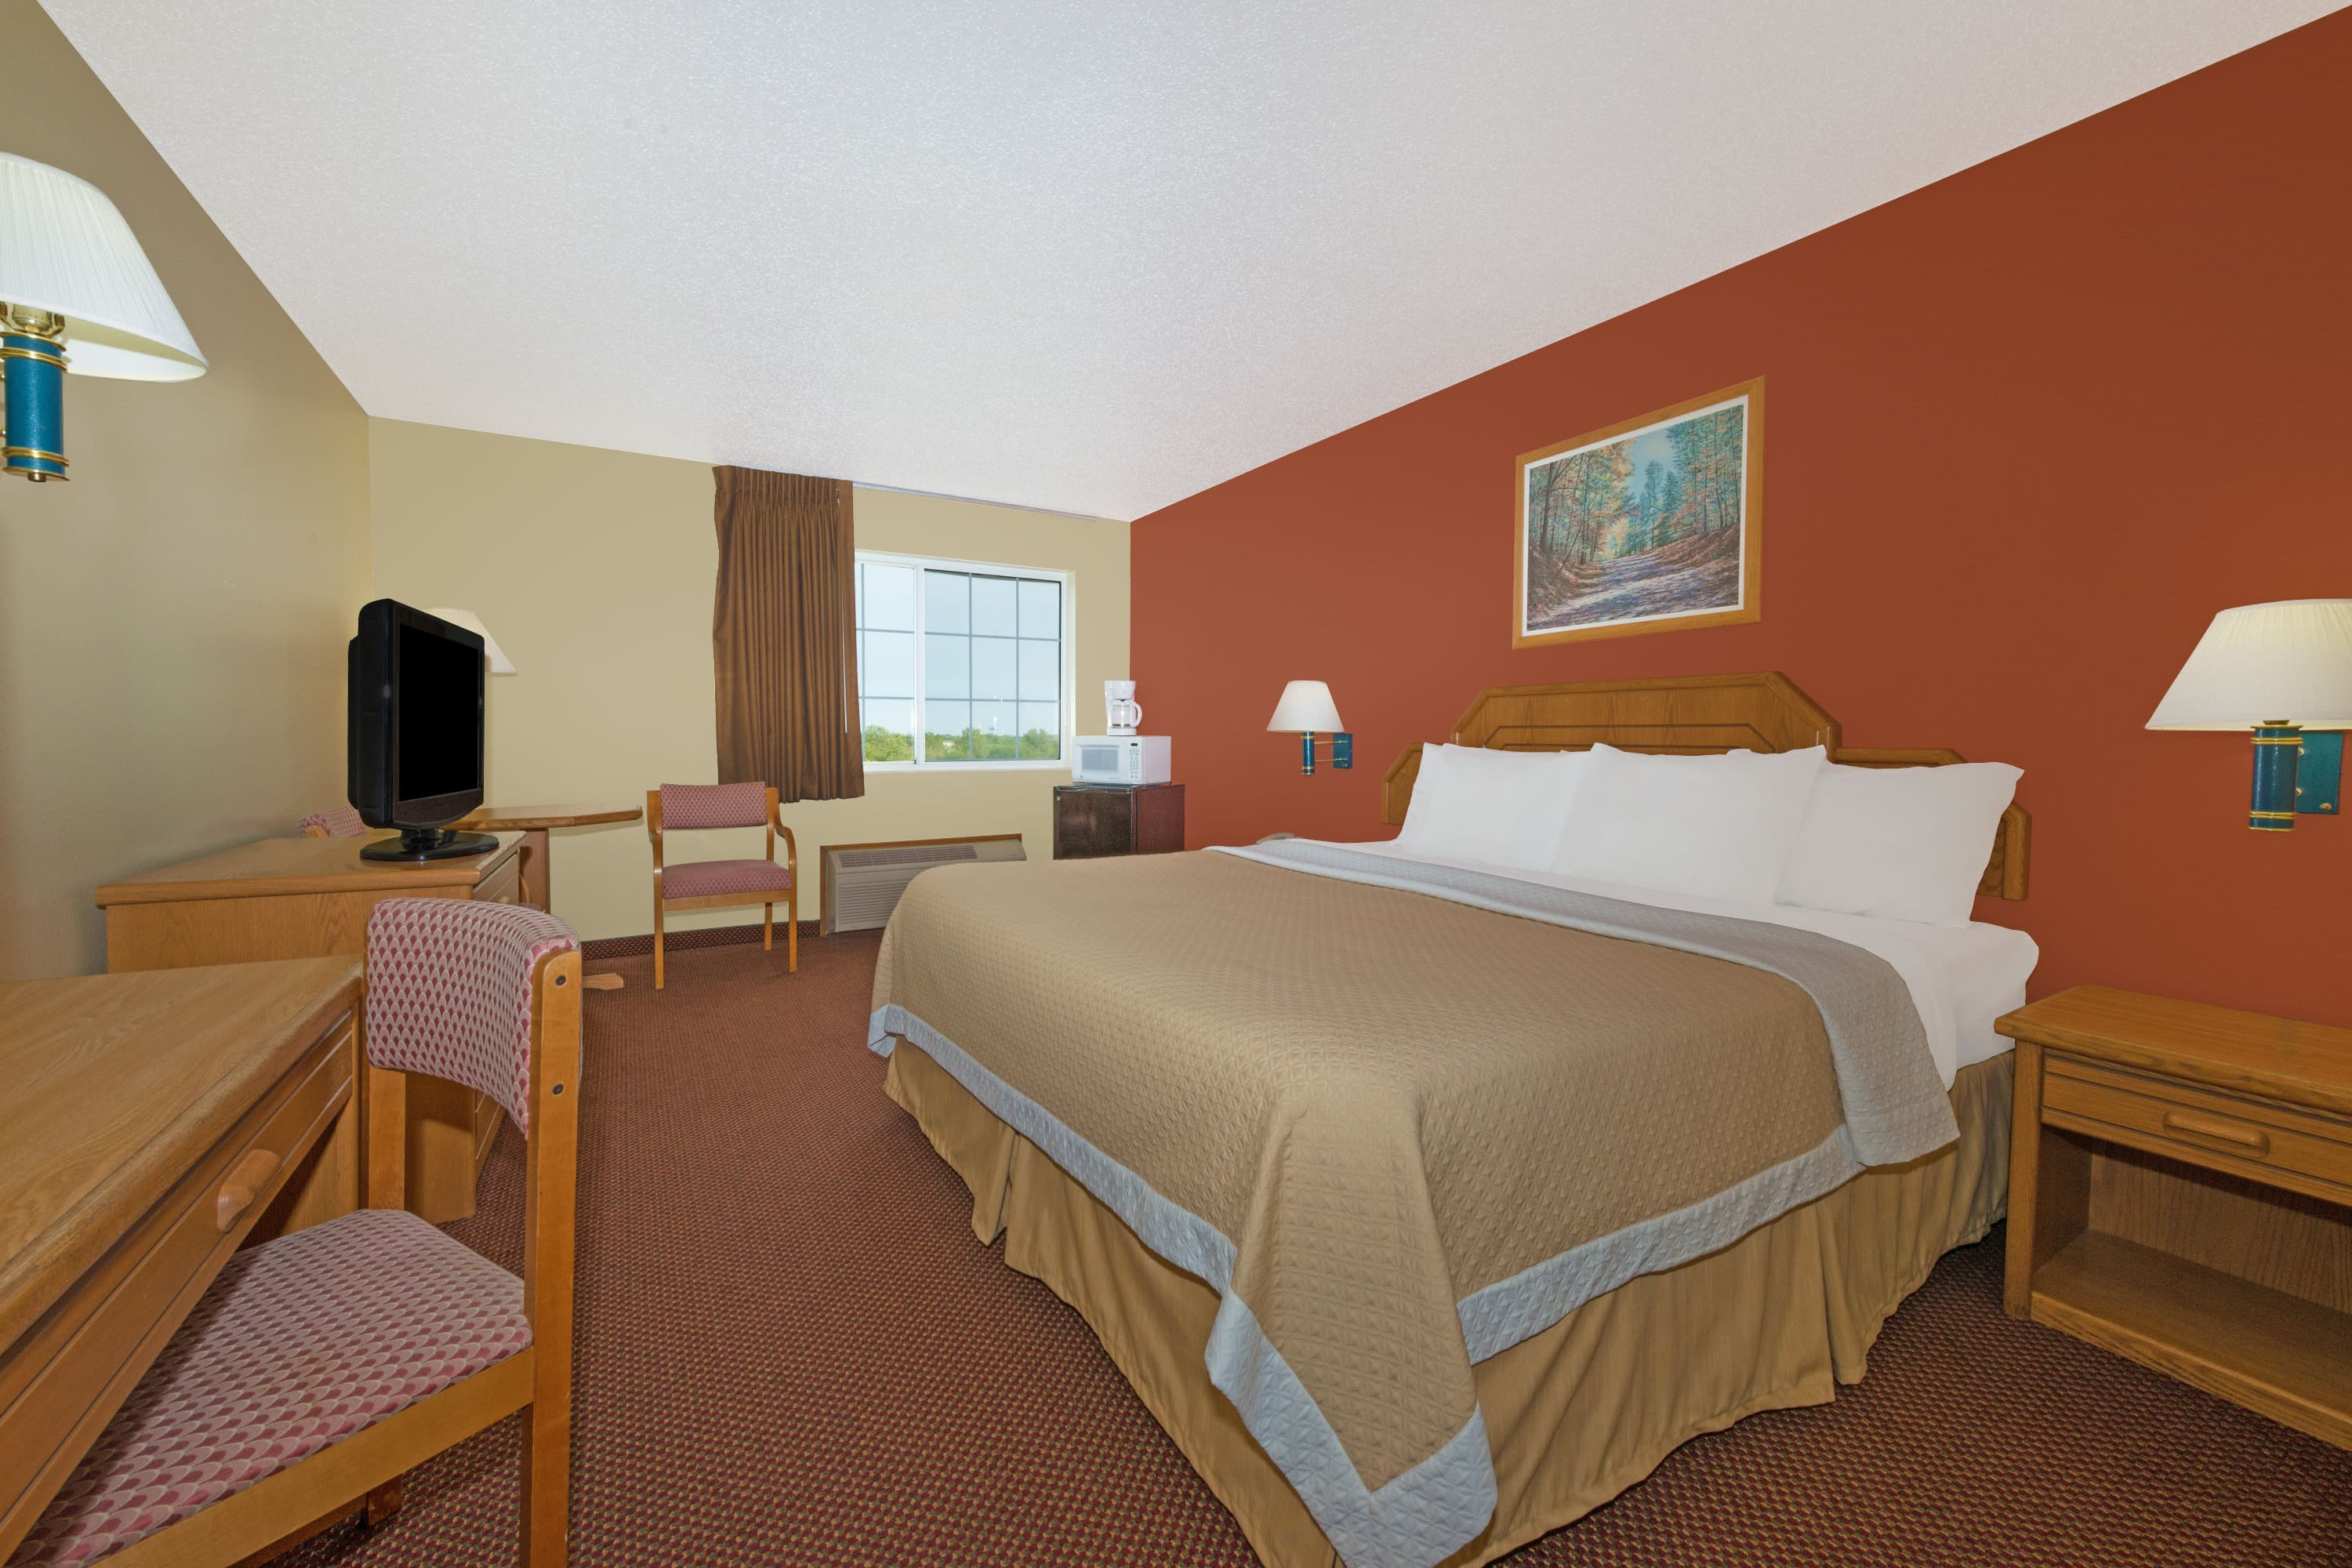 Guest room at the Days Inn Cameron in Cameron, Missouri